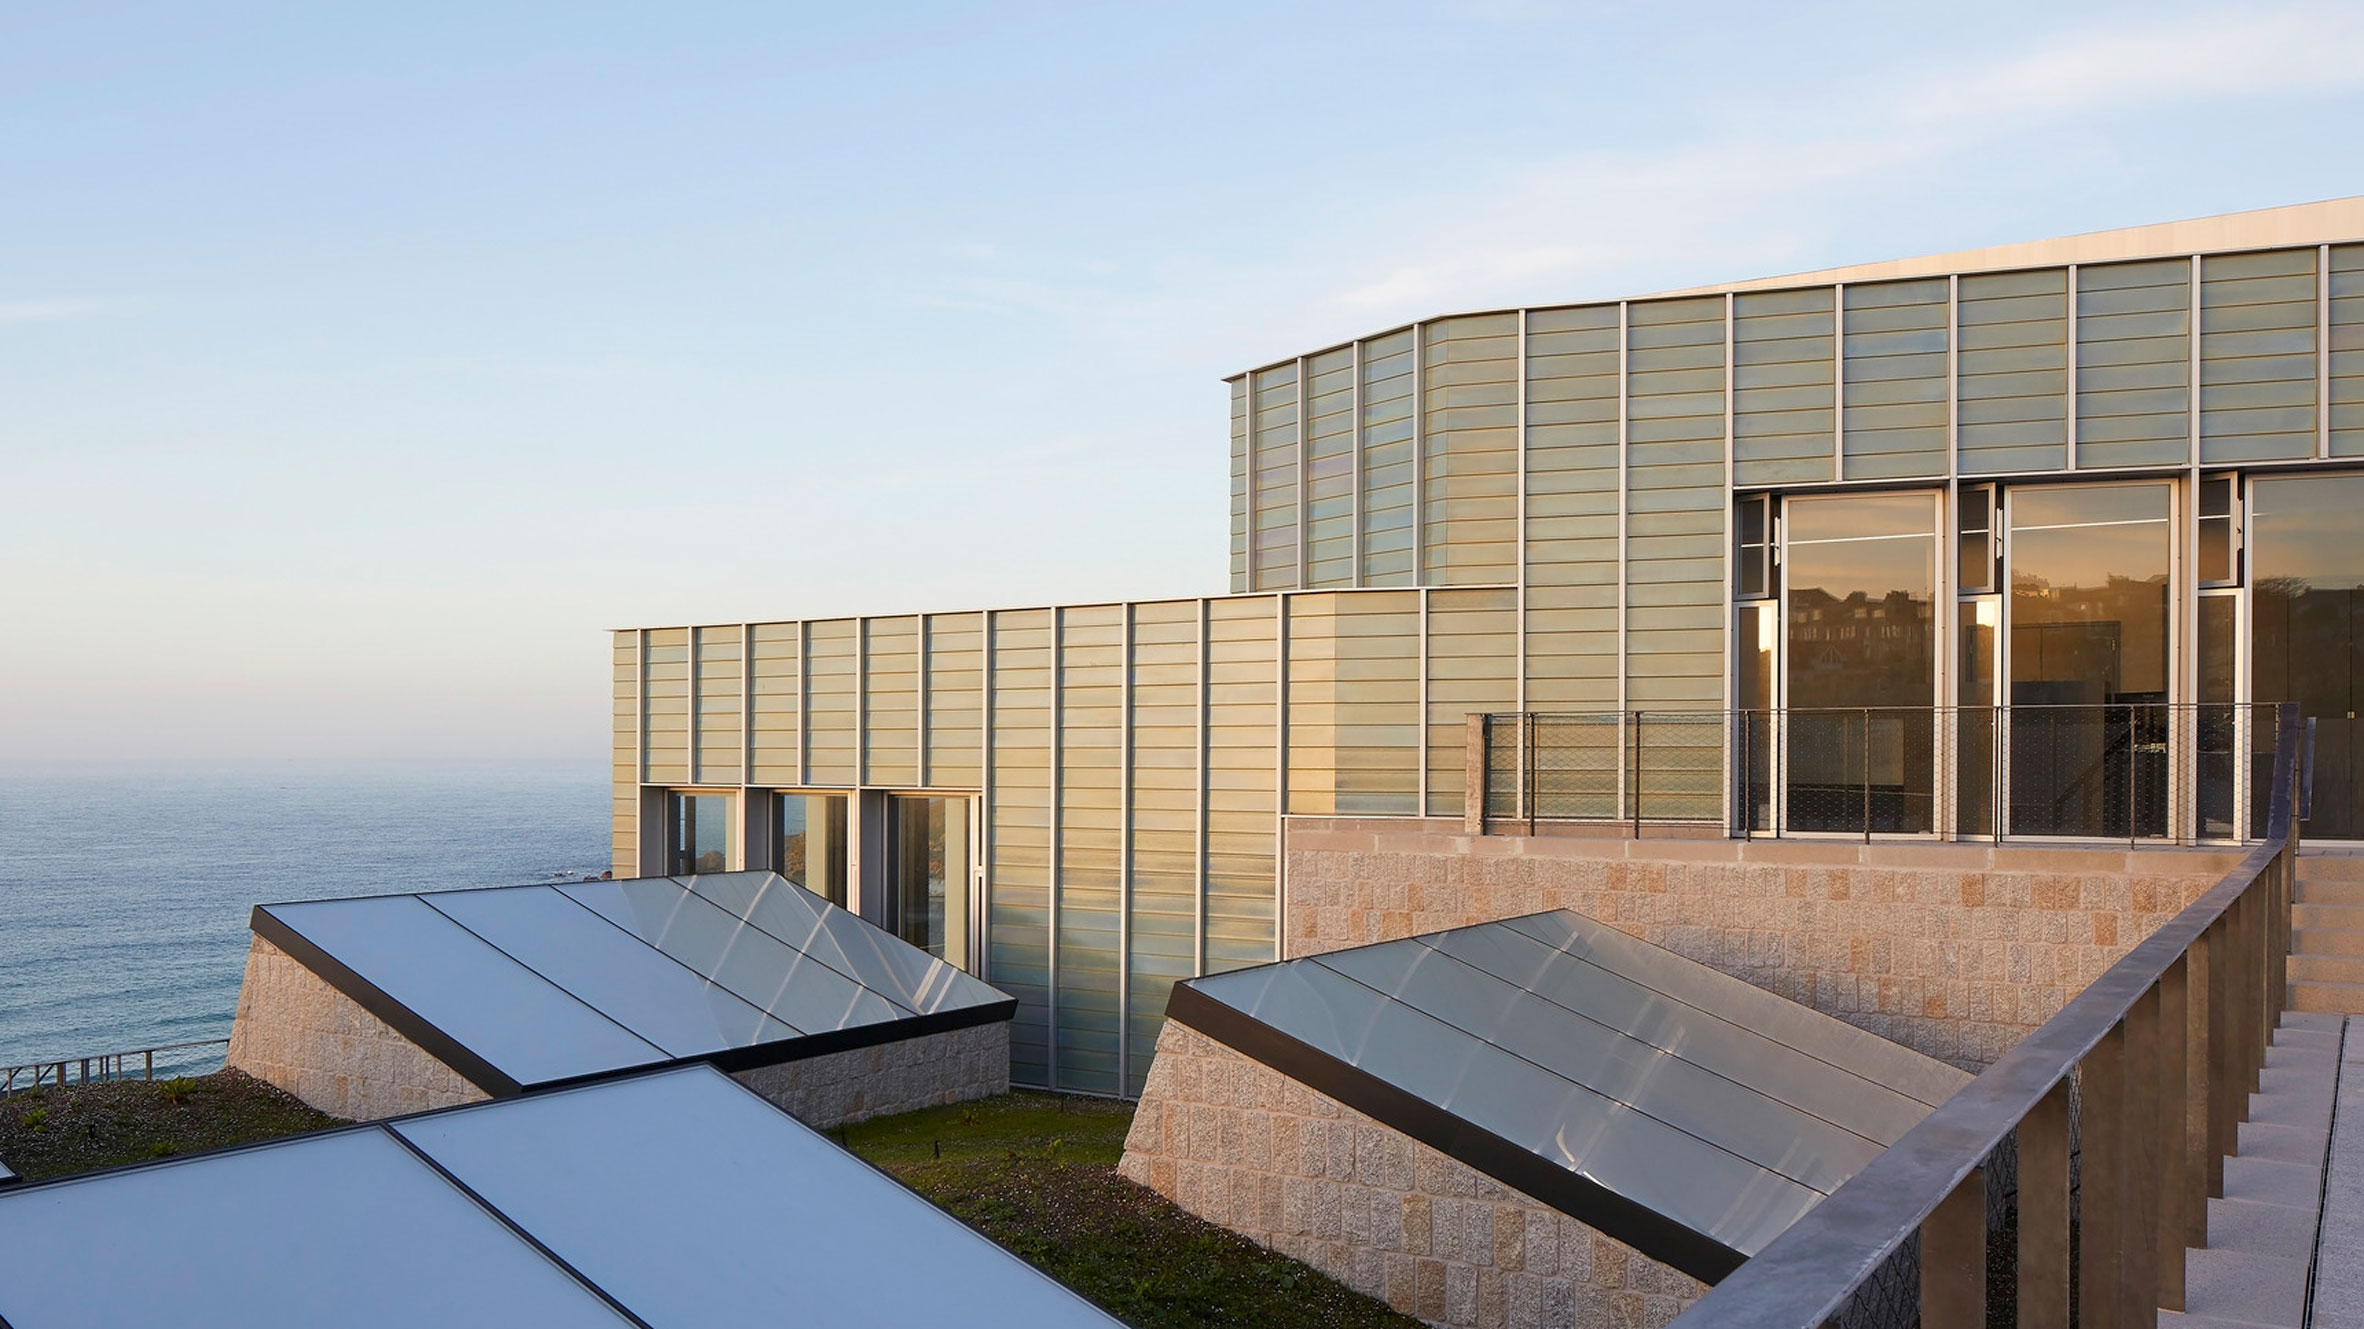 Tate St Ives by Jamie Fobert Architects